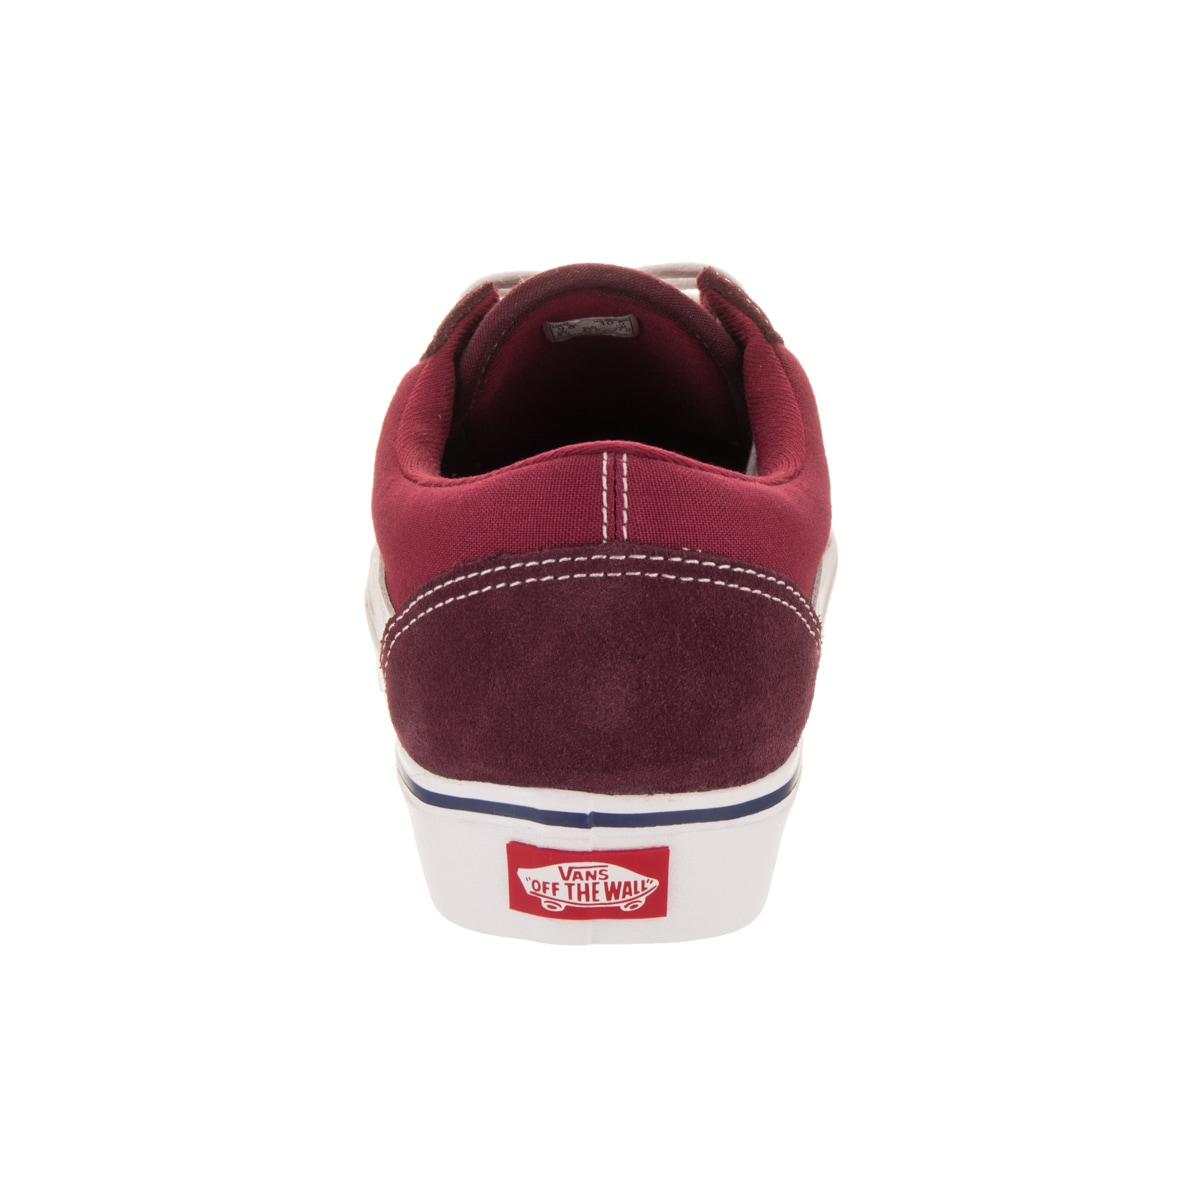 9566bf0e1f Shop Vans Unisex Old Skool Lite (Throwback) Skate Shoe - Free Shipping  Today - Overstock - 16739628